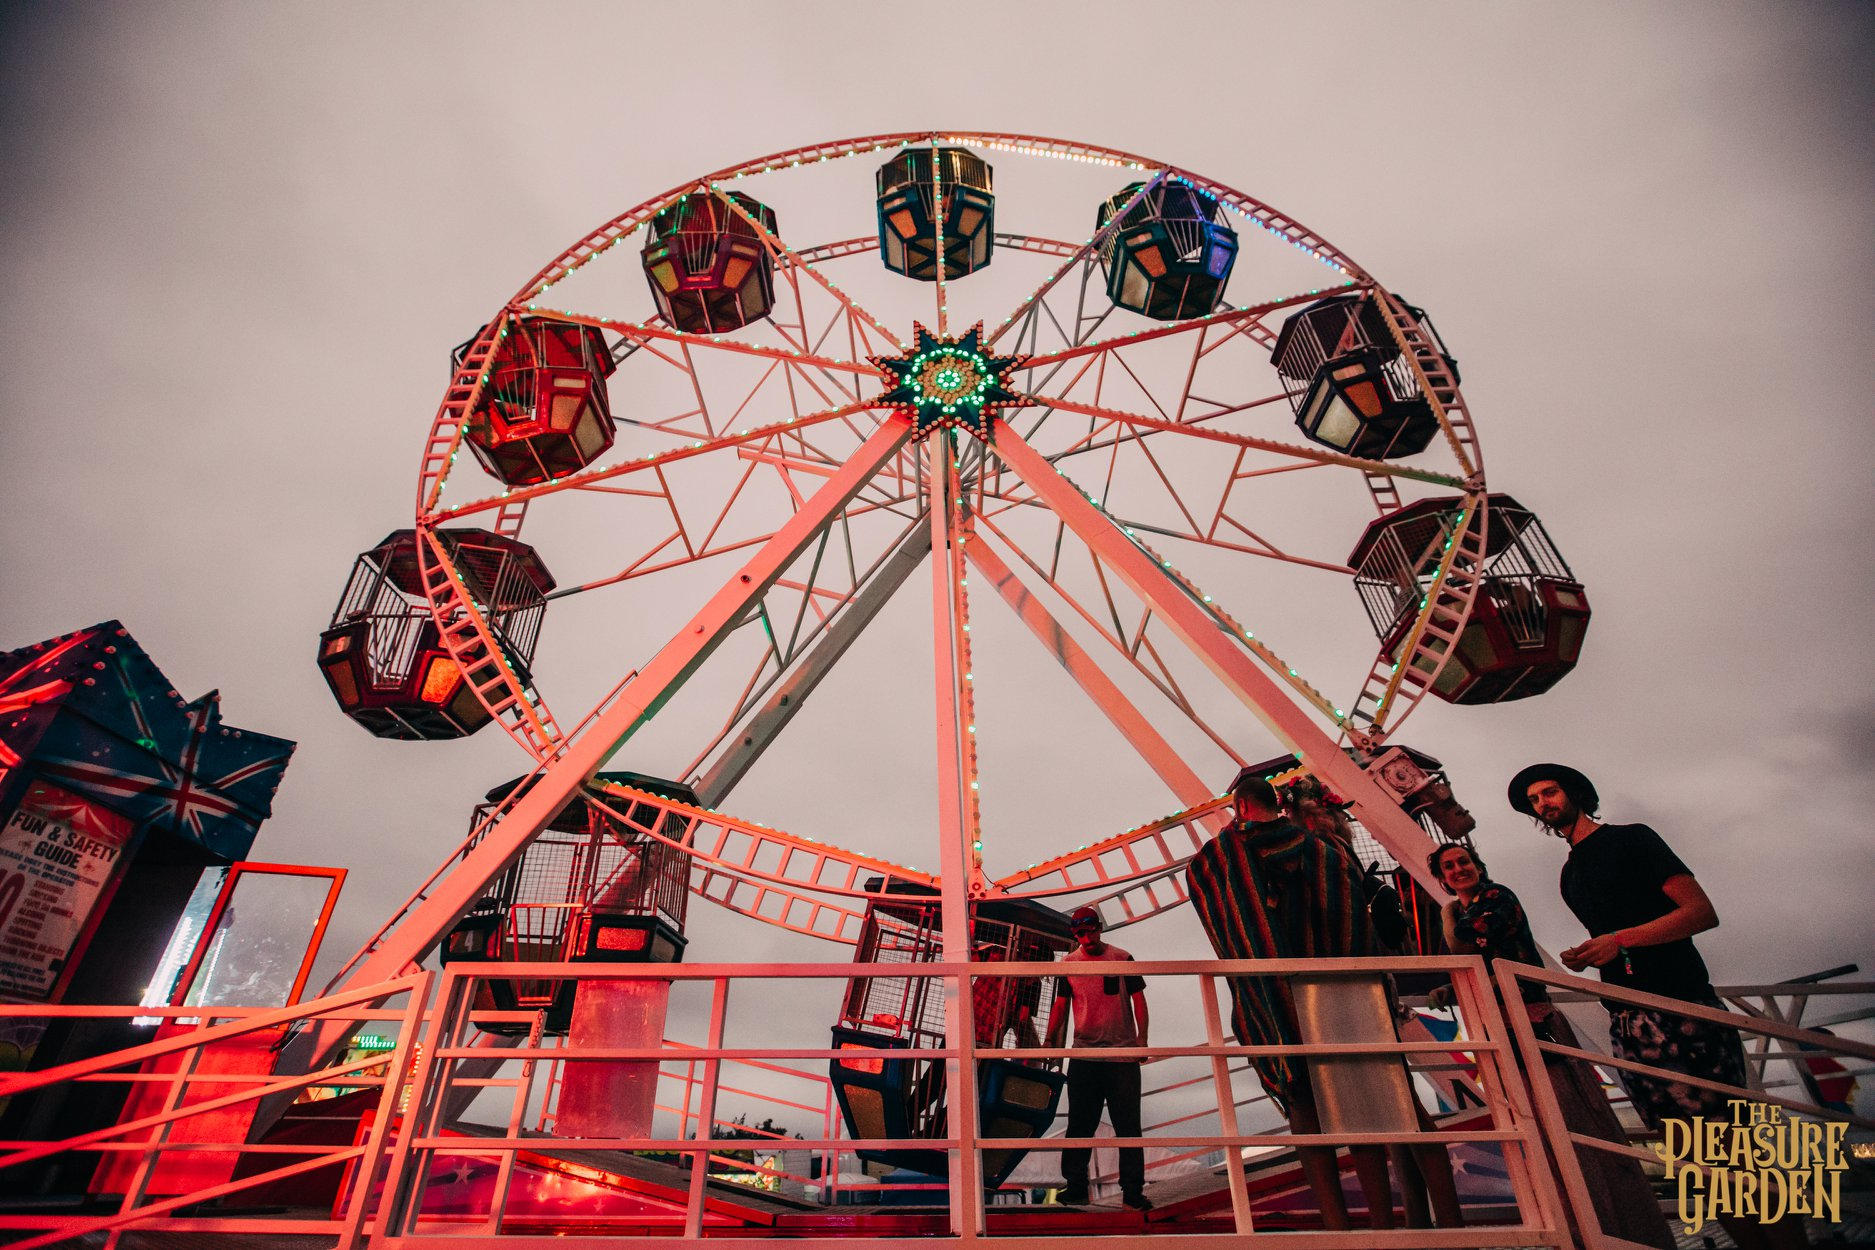 The Pleasure Garden Ferris Wheel